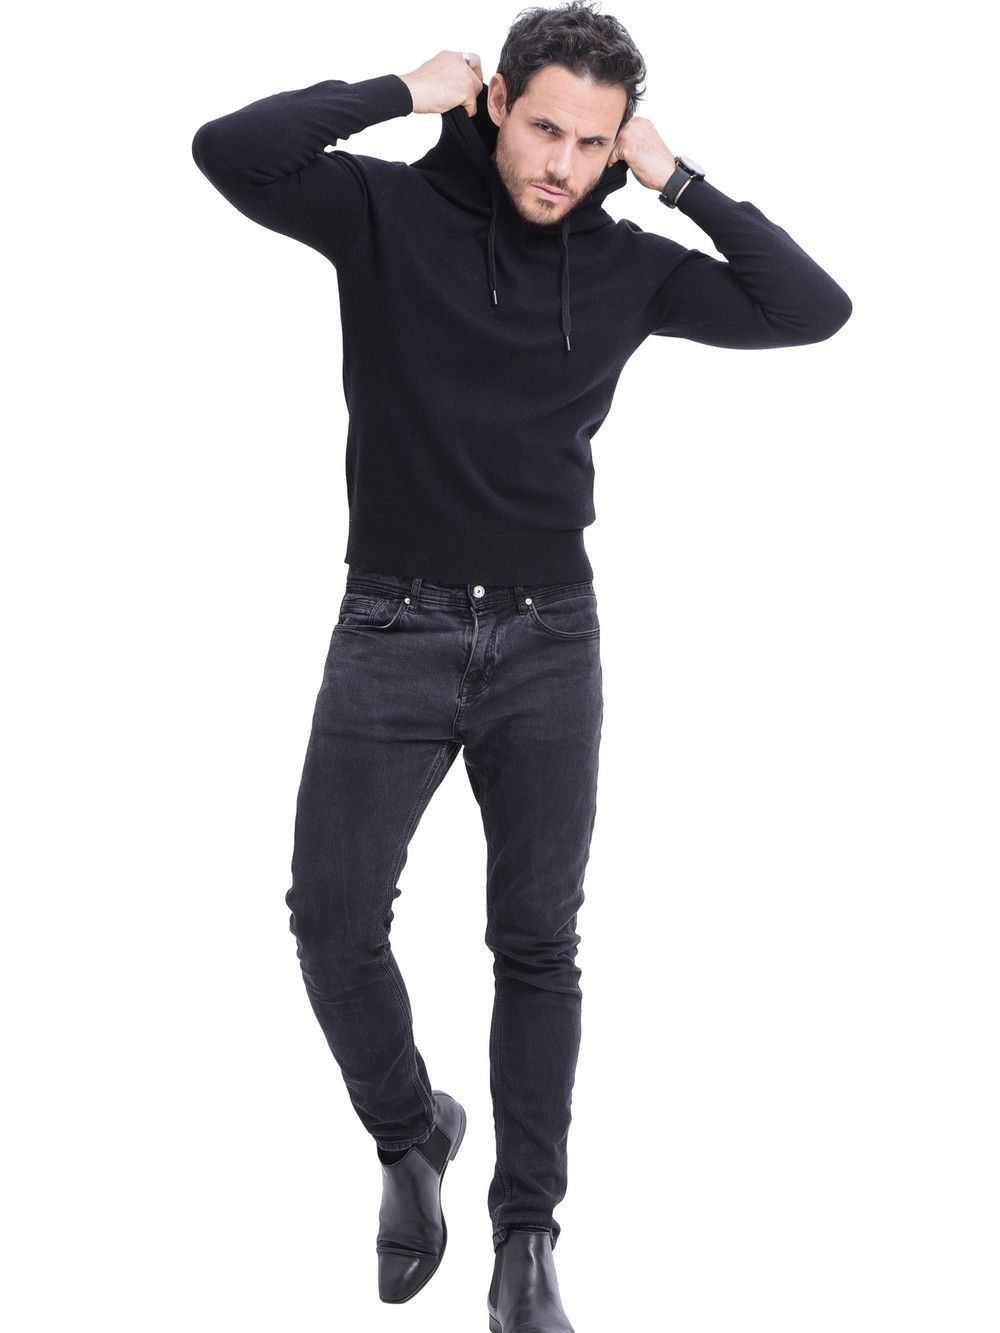 William De Faye Hooded Sweater with Cords in Black